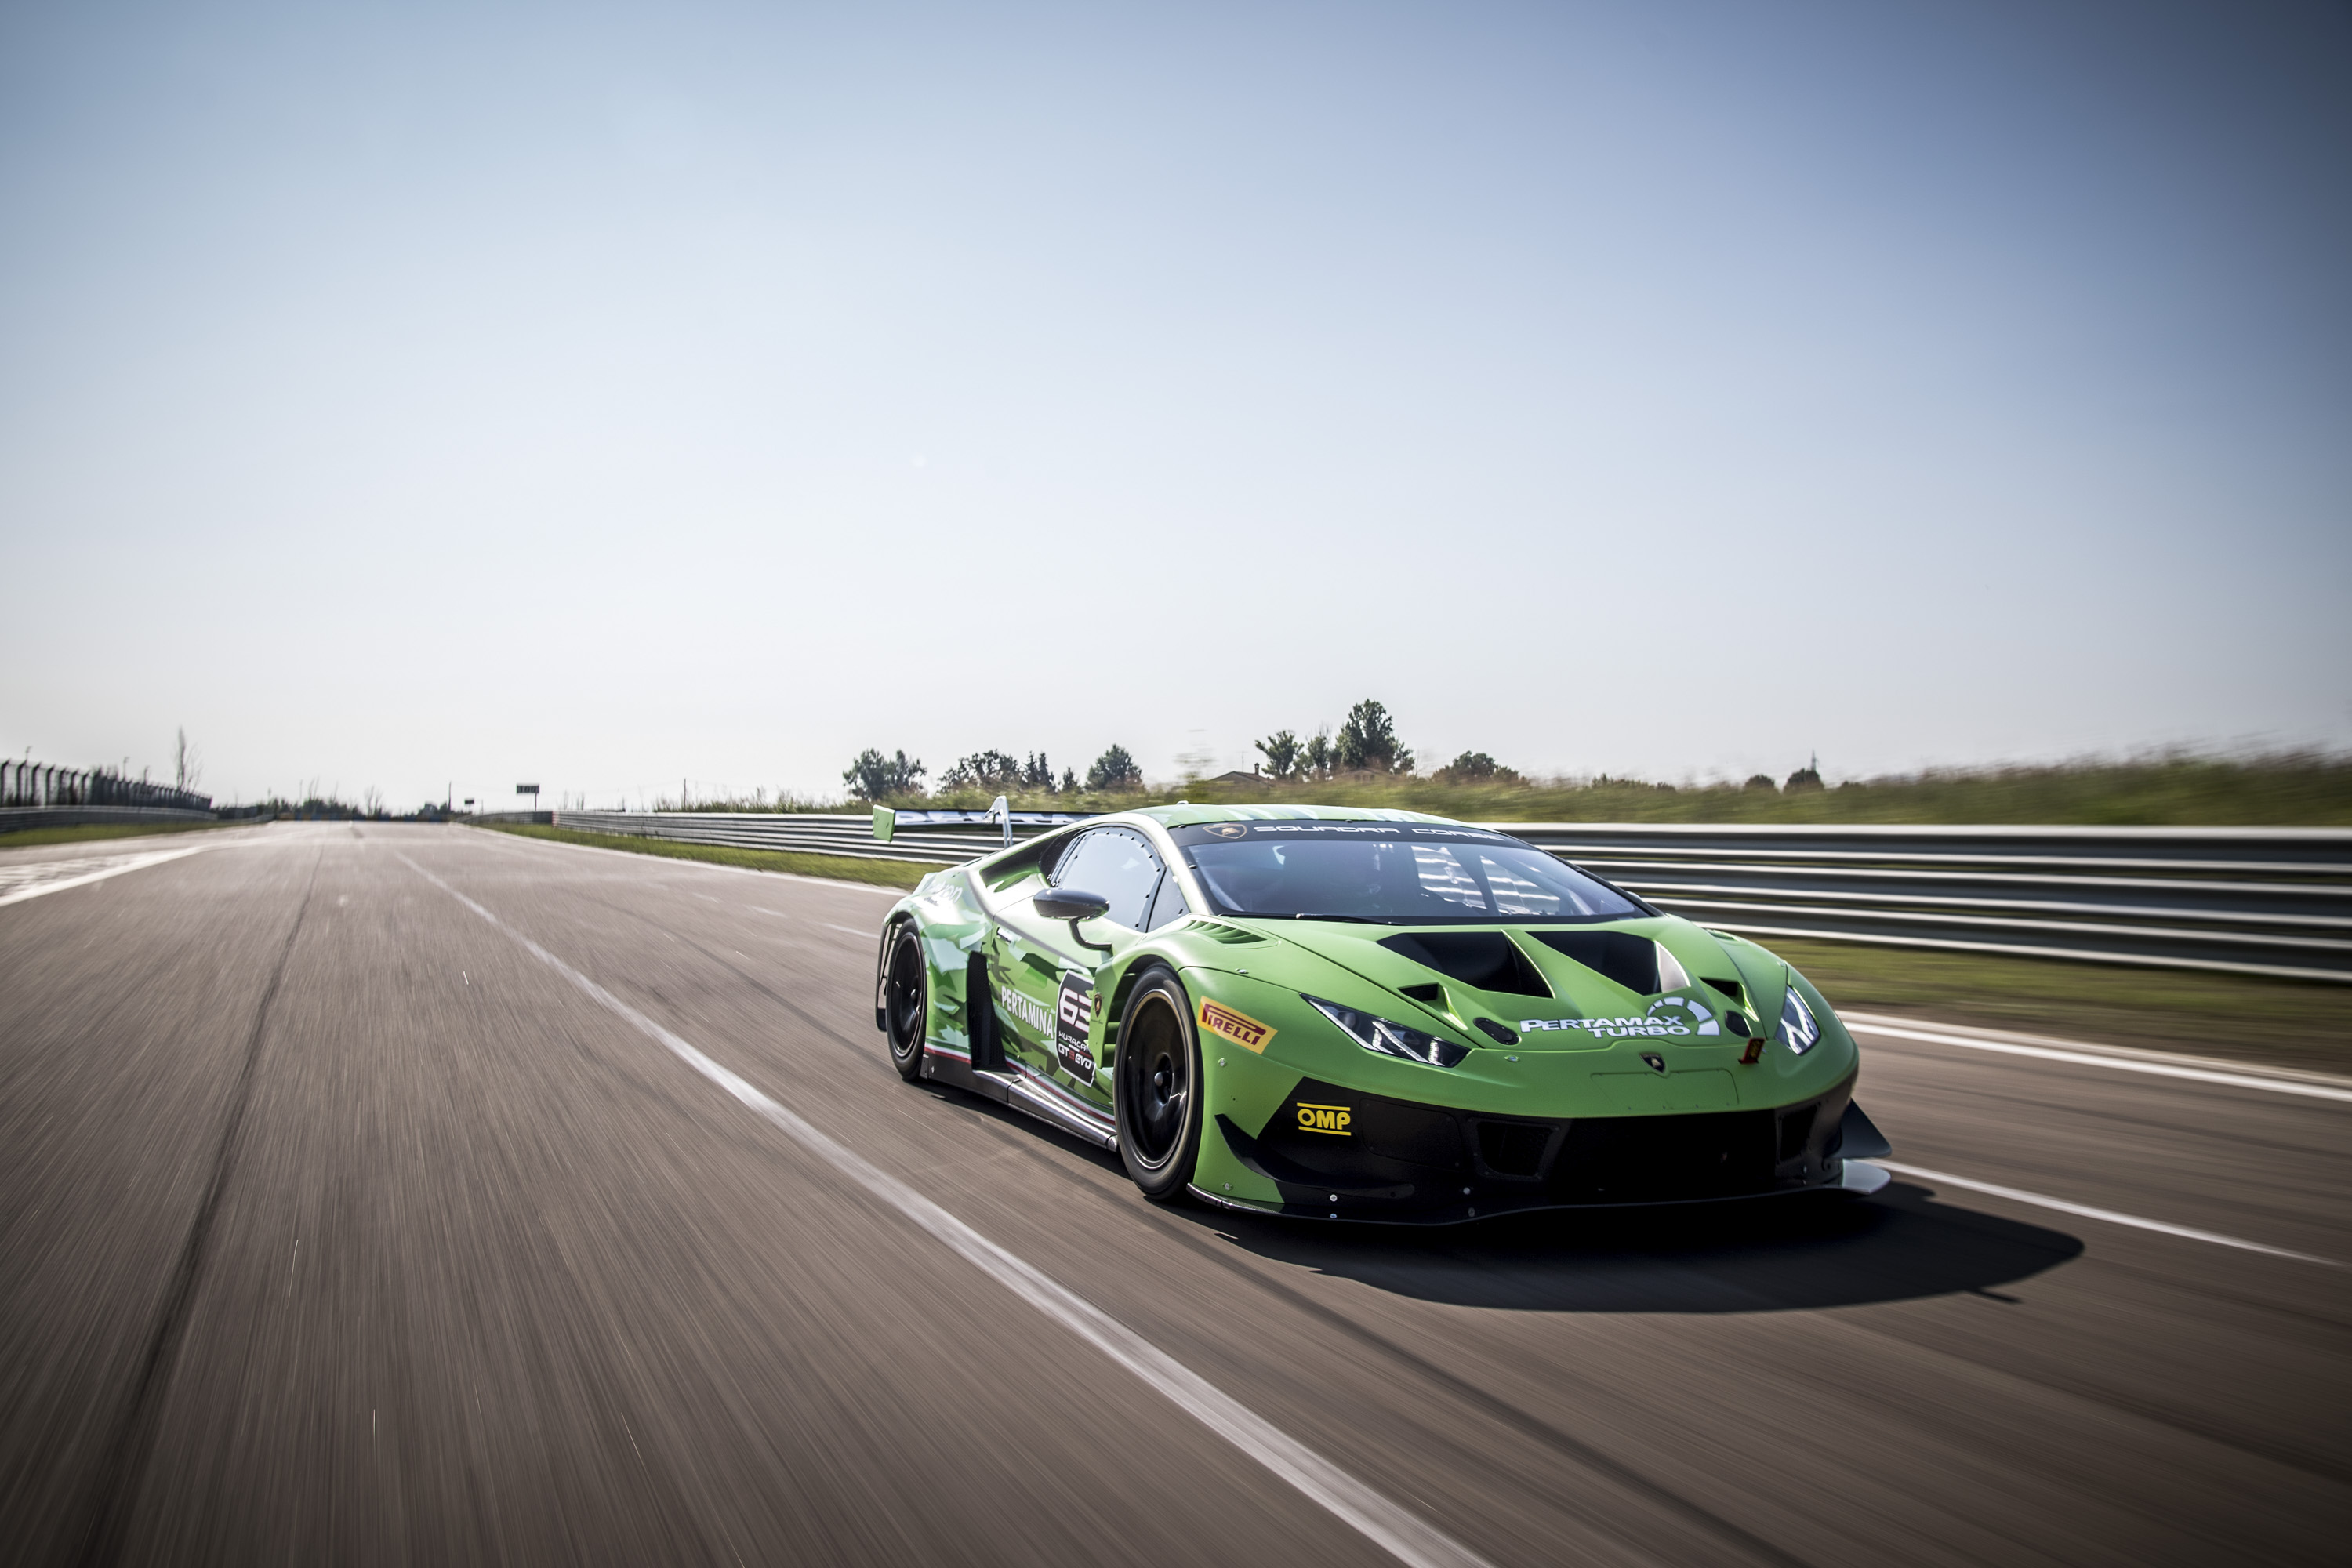 2019 Lamborghini Huracan Gt3 Evo Wallpapers 21 Hd Images Newcarcars